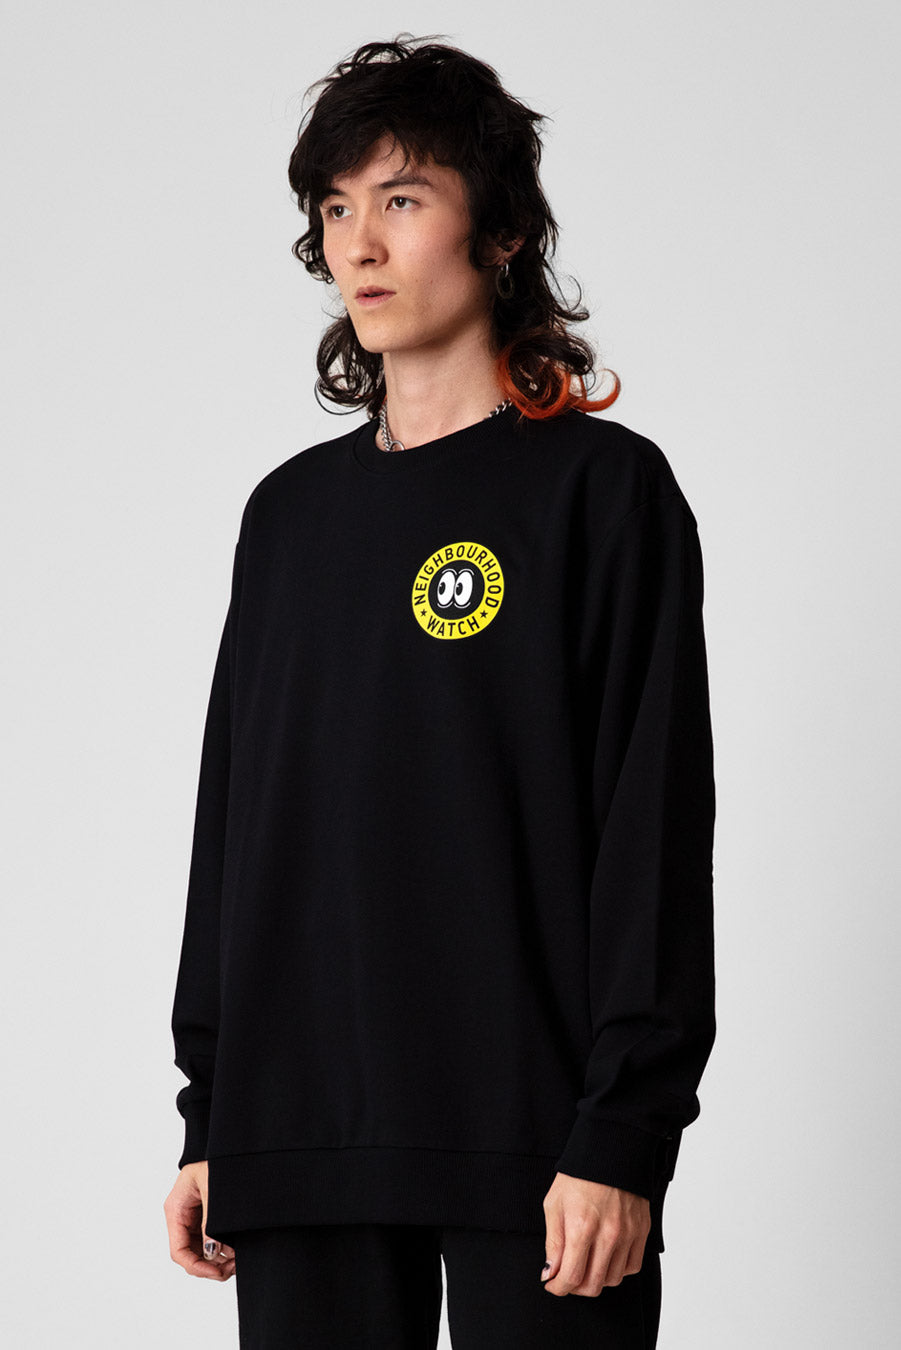 NEIGHBOURHOOD WATCH Sweatshirt